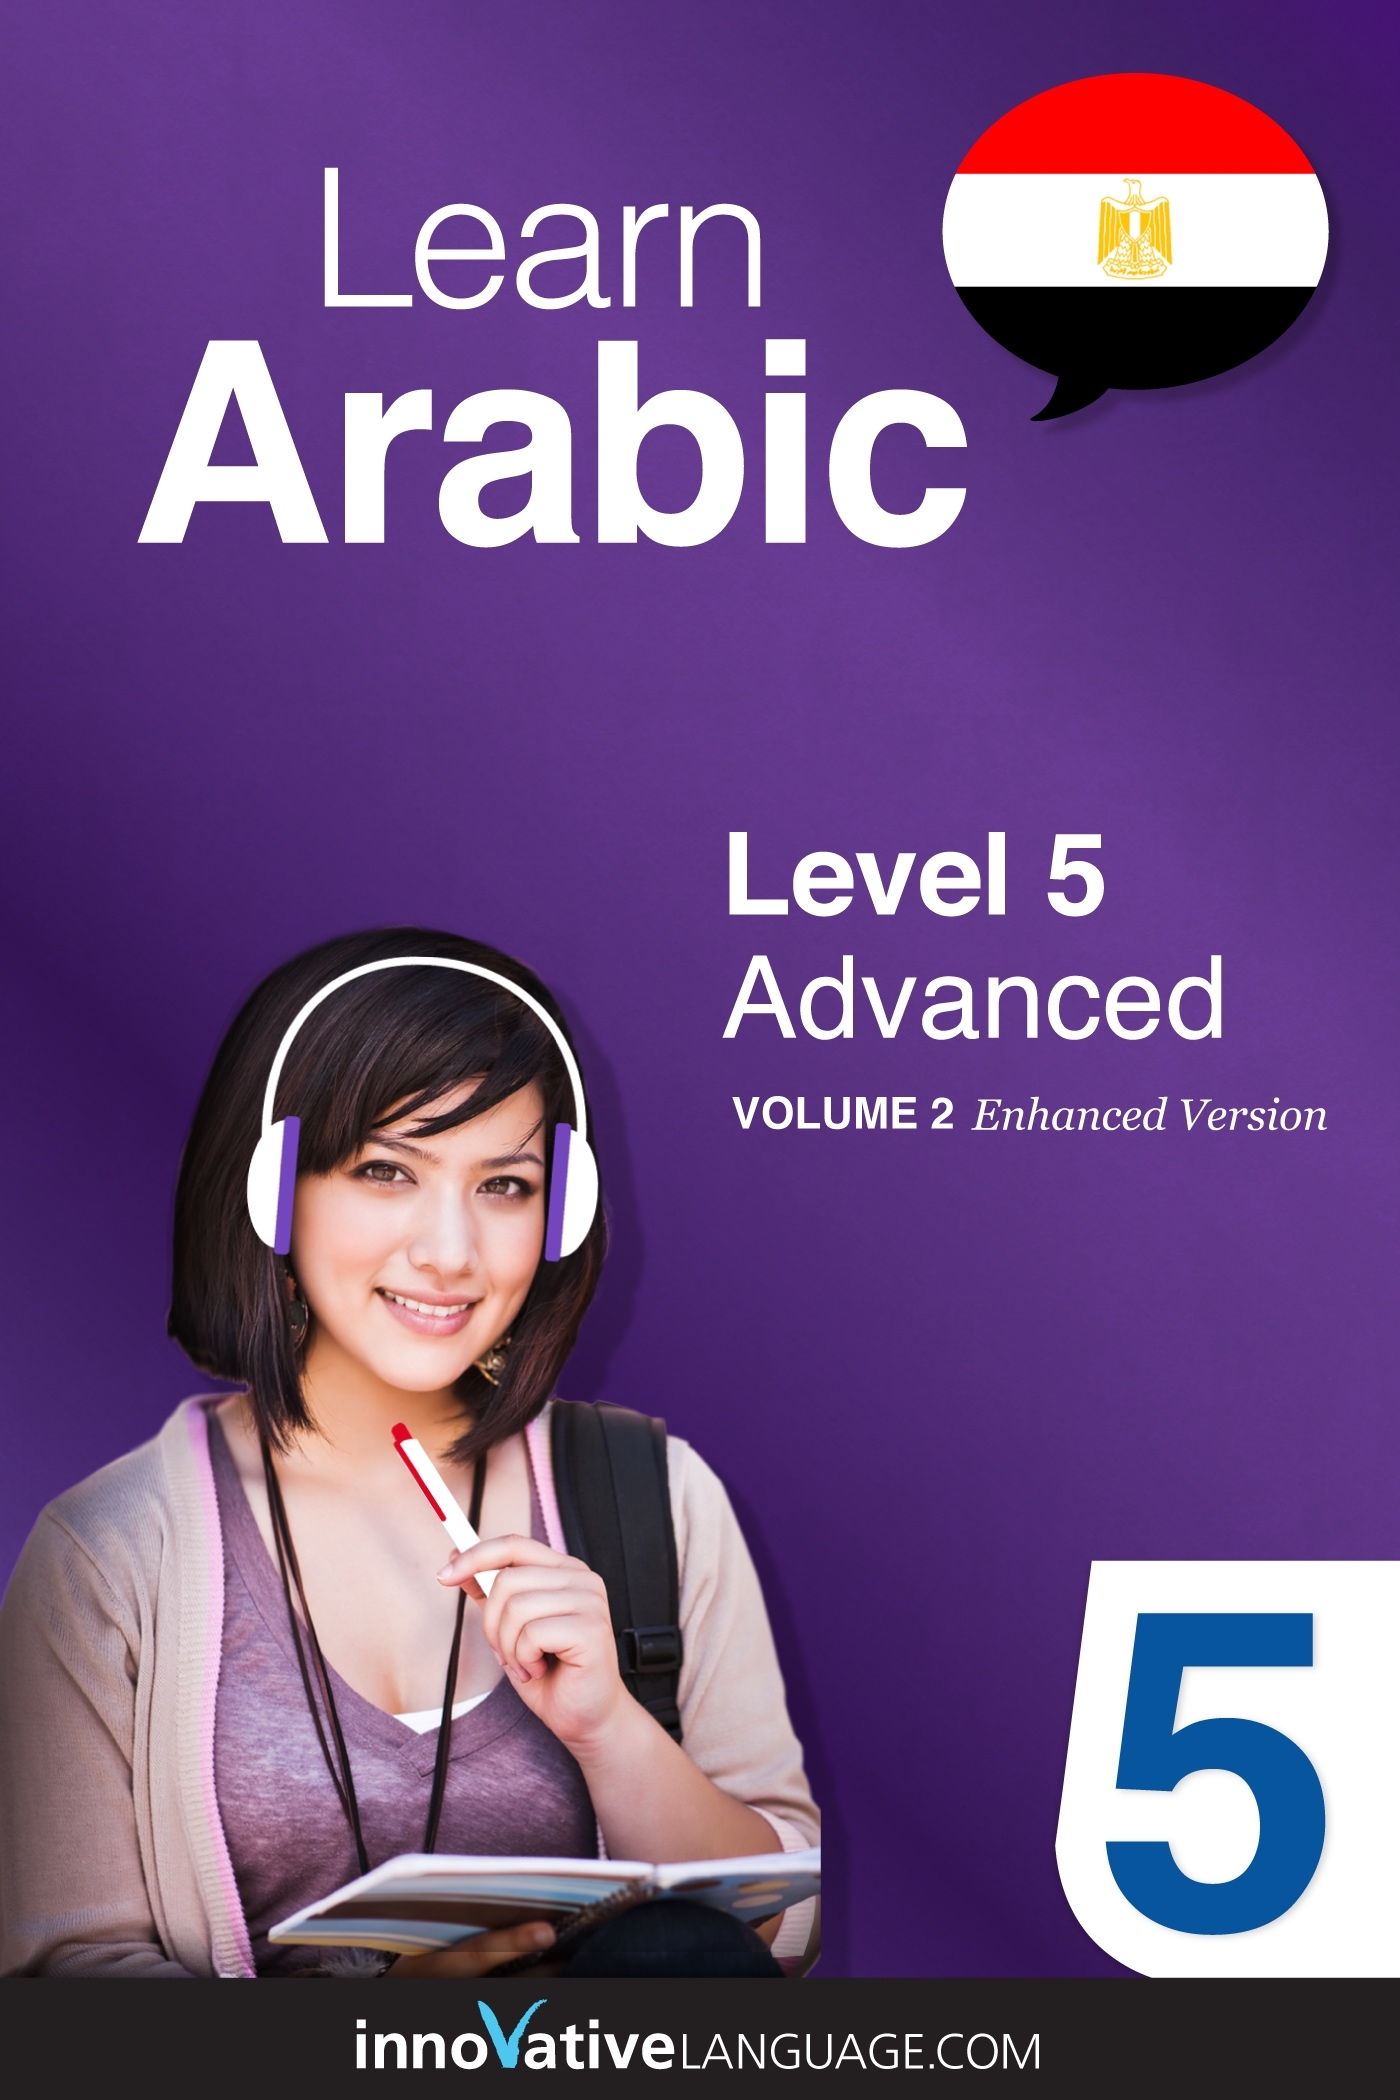 [eBook] Learn Arabic - Level 5: Advanced, Volume 2